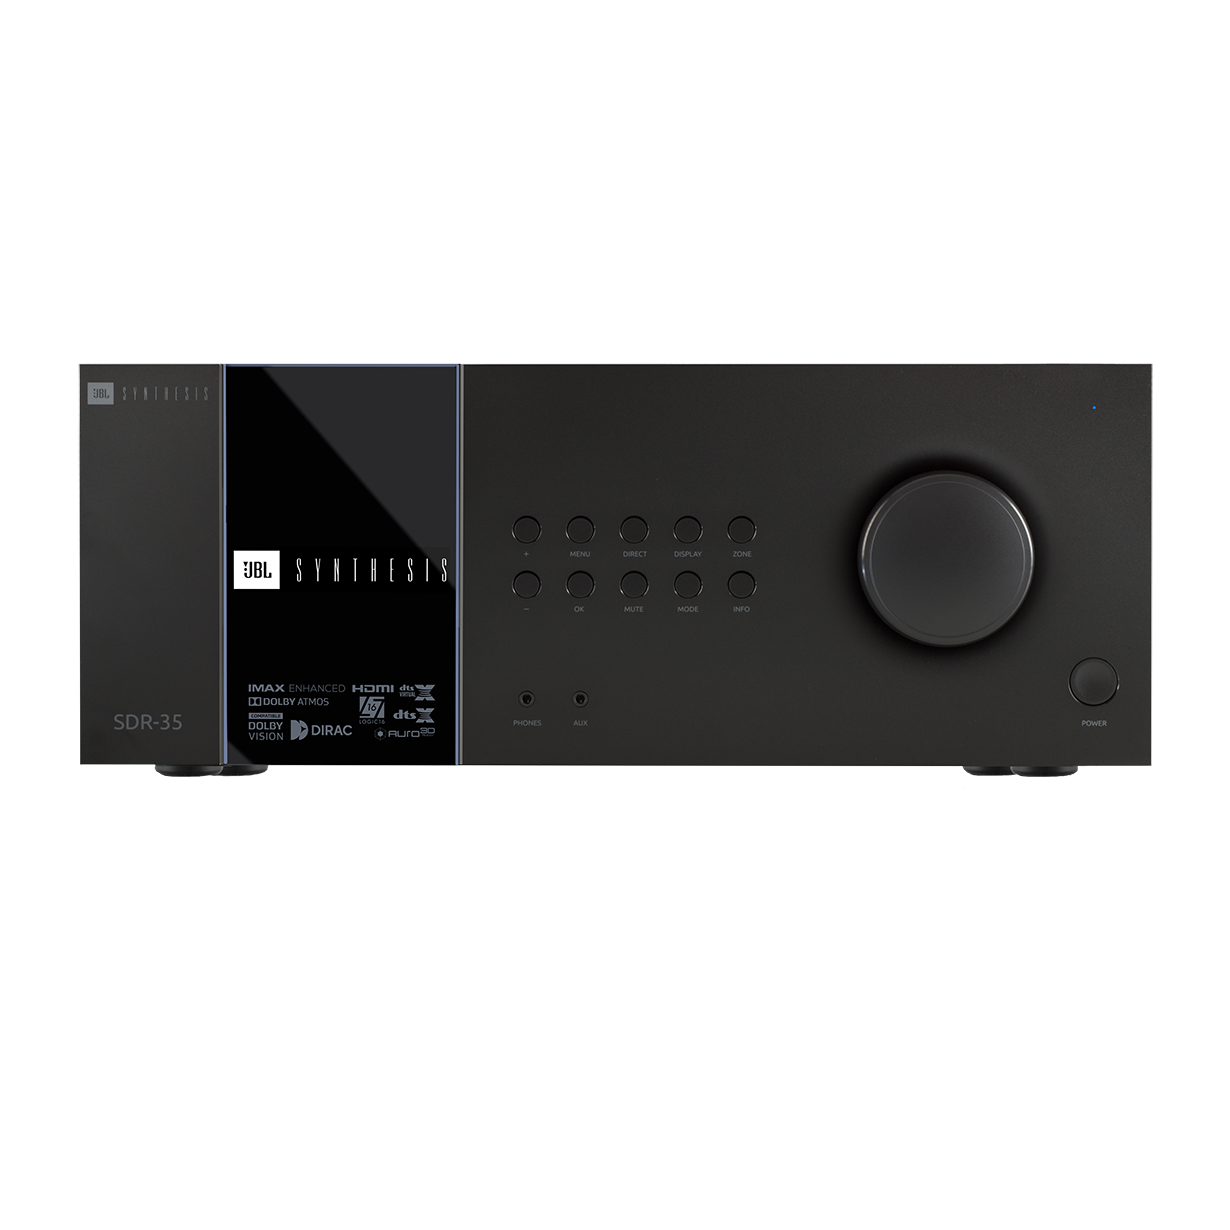 SDR-35 - Black - Class G Immersive Surround Sound AVR w/16 channels of processing - Hero